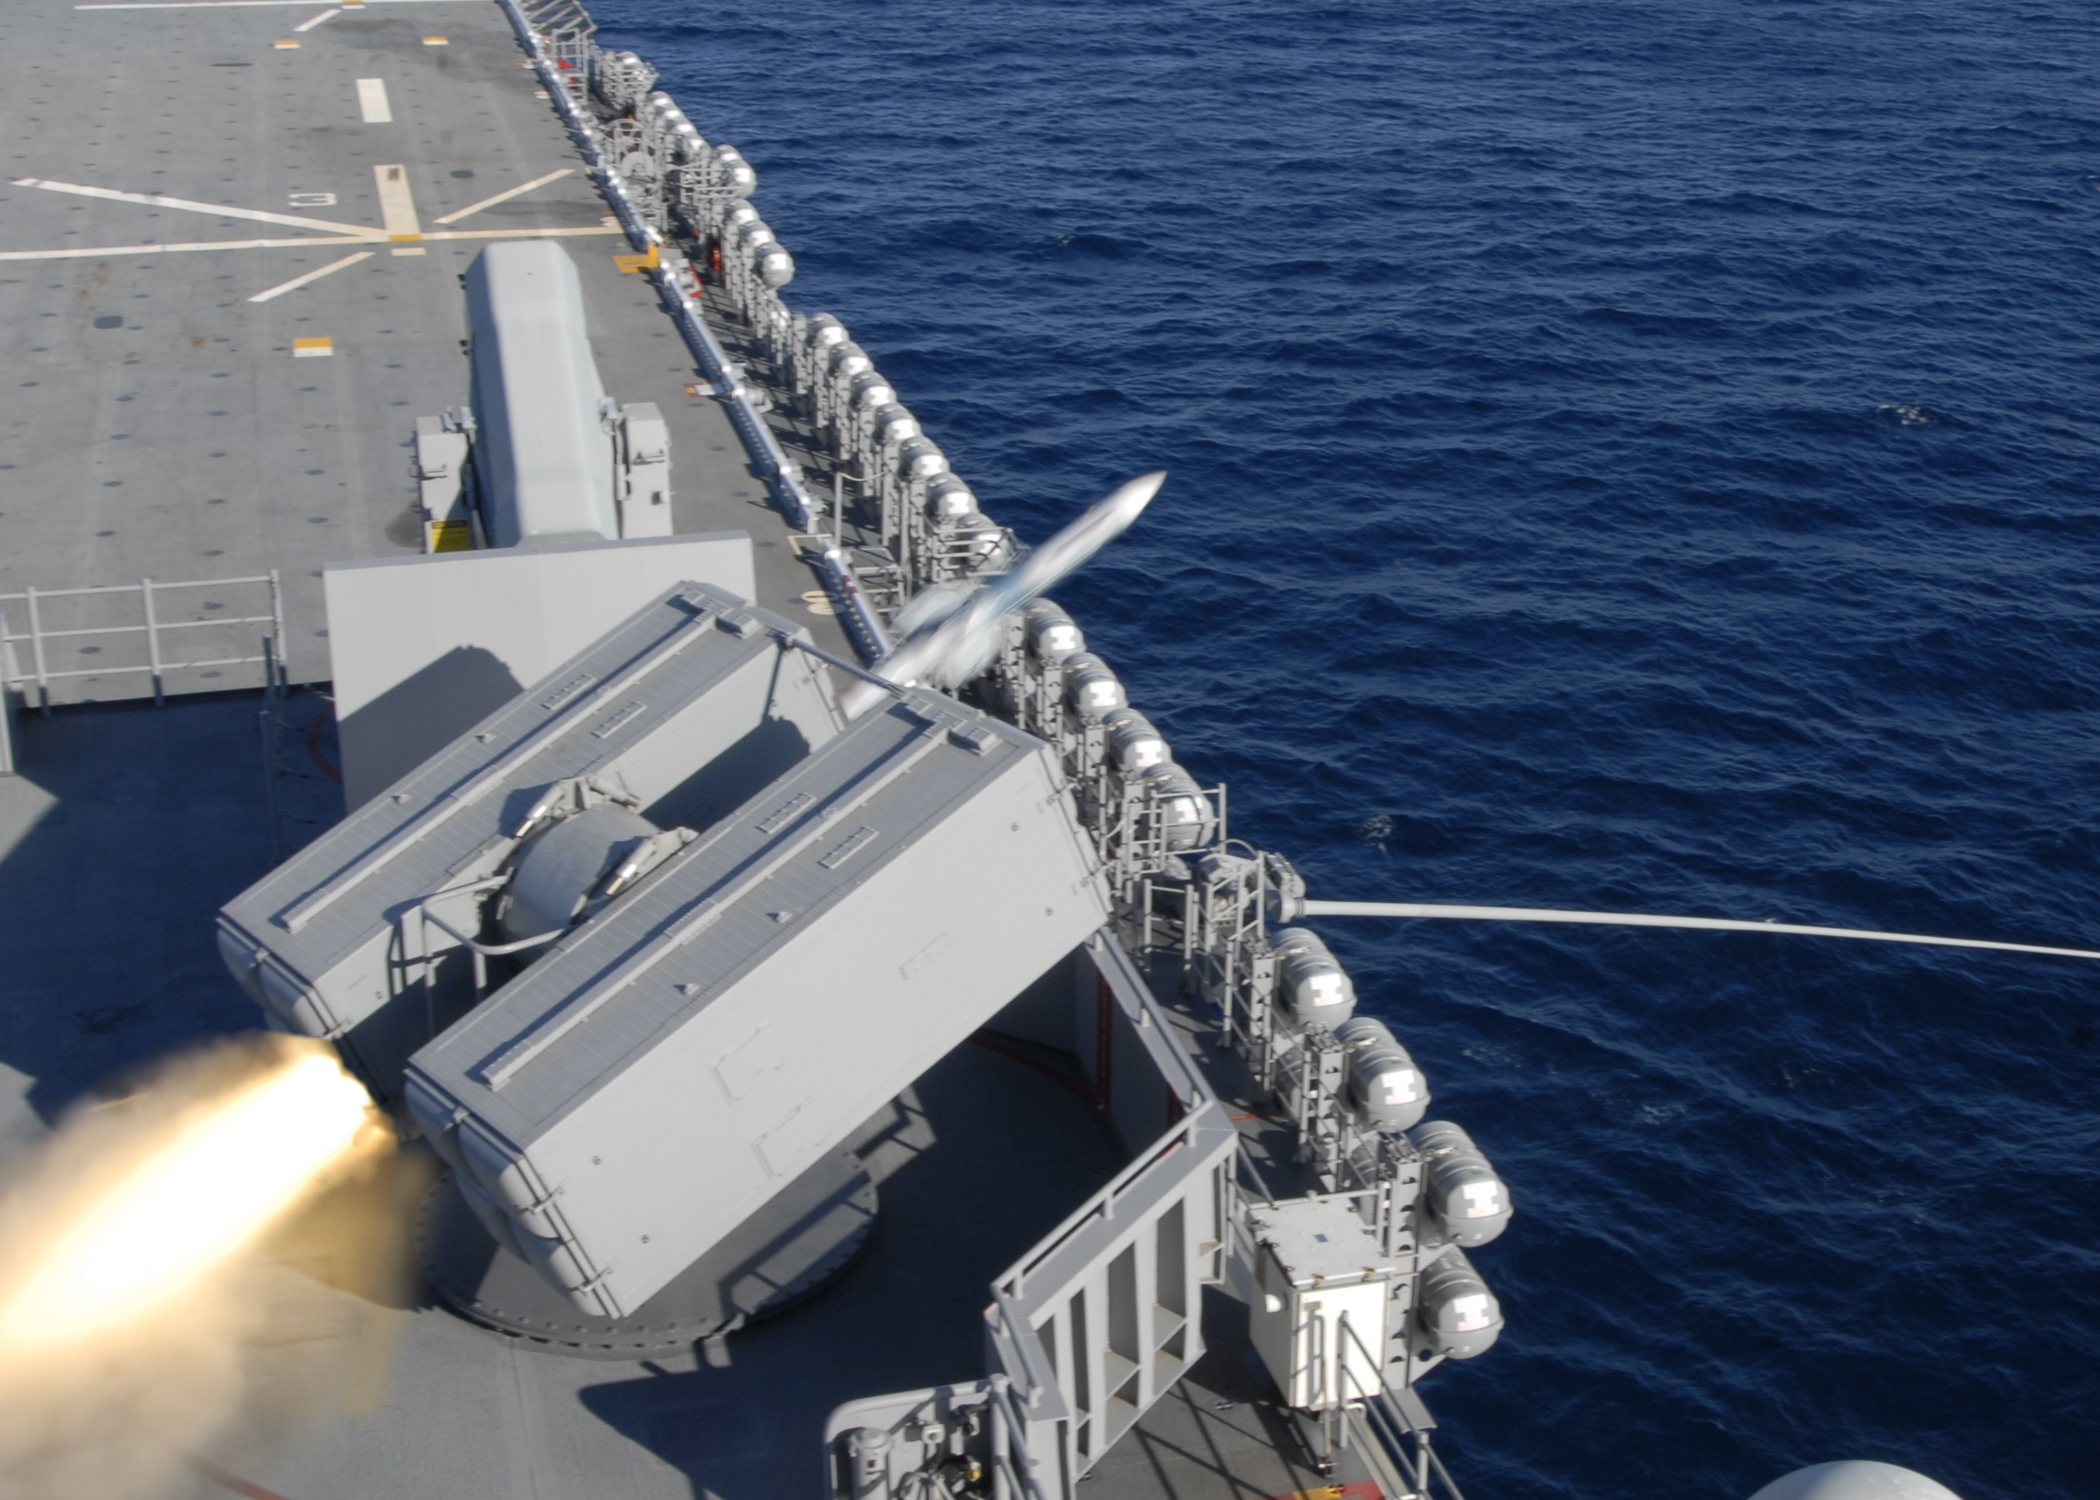 US_Navy_100220-N-1524B-057_The_amphibious_assault_ship_USS_Makin_Island_%28LHD_8%29_launches_a_NATO_Sea_Sparrow_missile_from_the_forward_NATO_mount.jpg